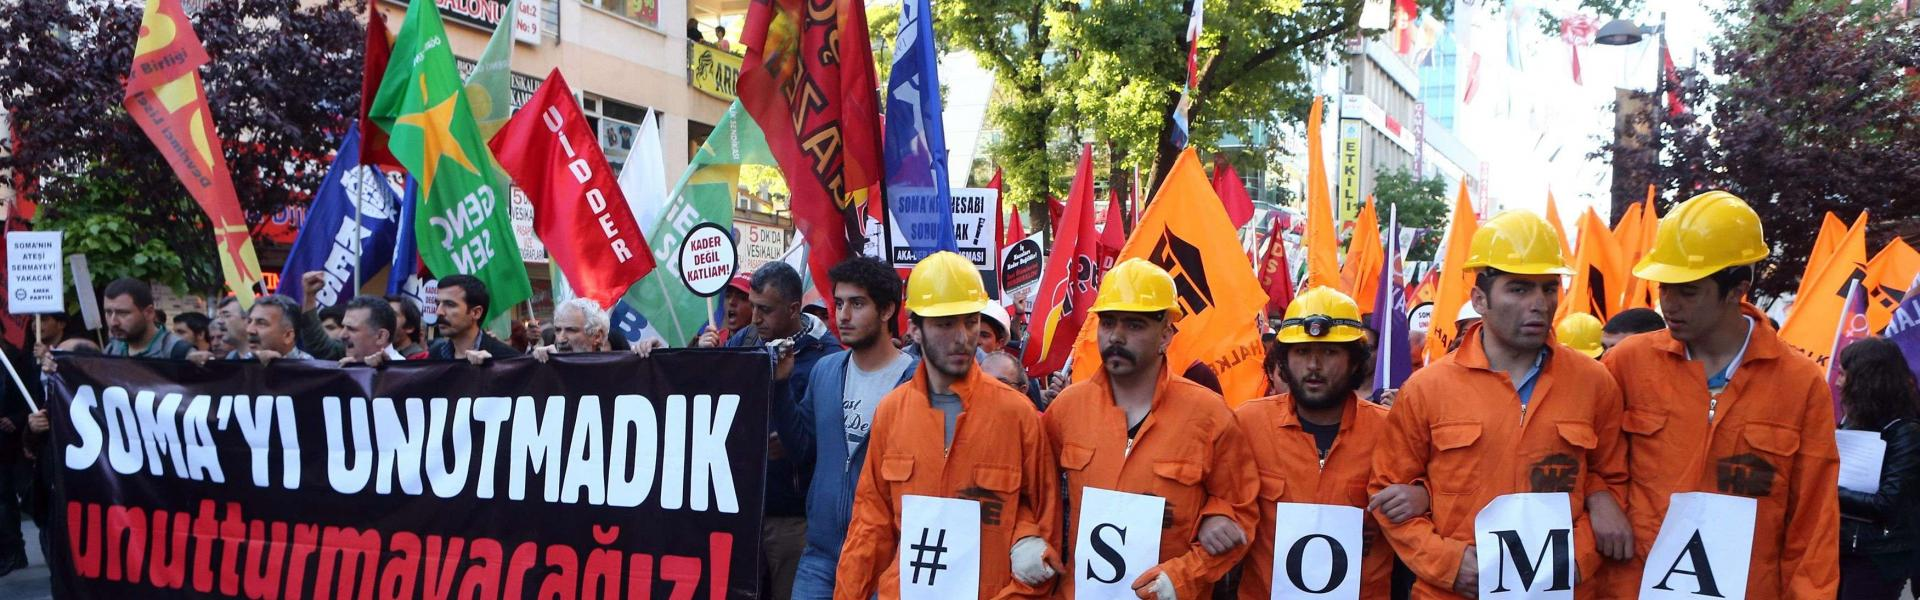 Turkey's Soma mining disaster commemorated on fifth anniversary